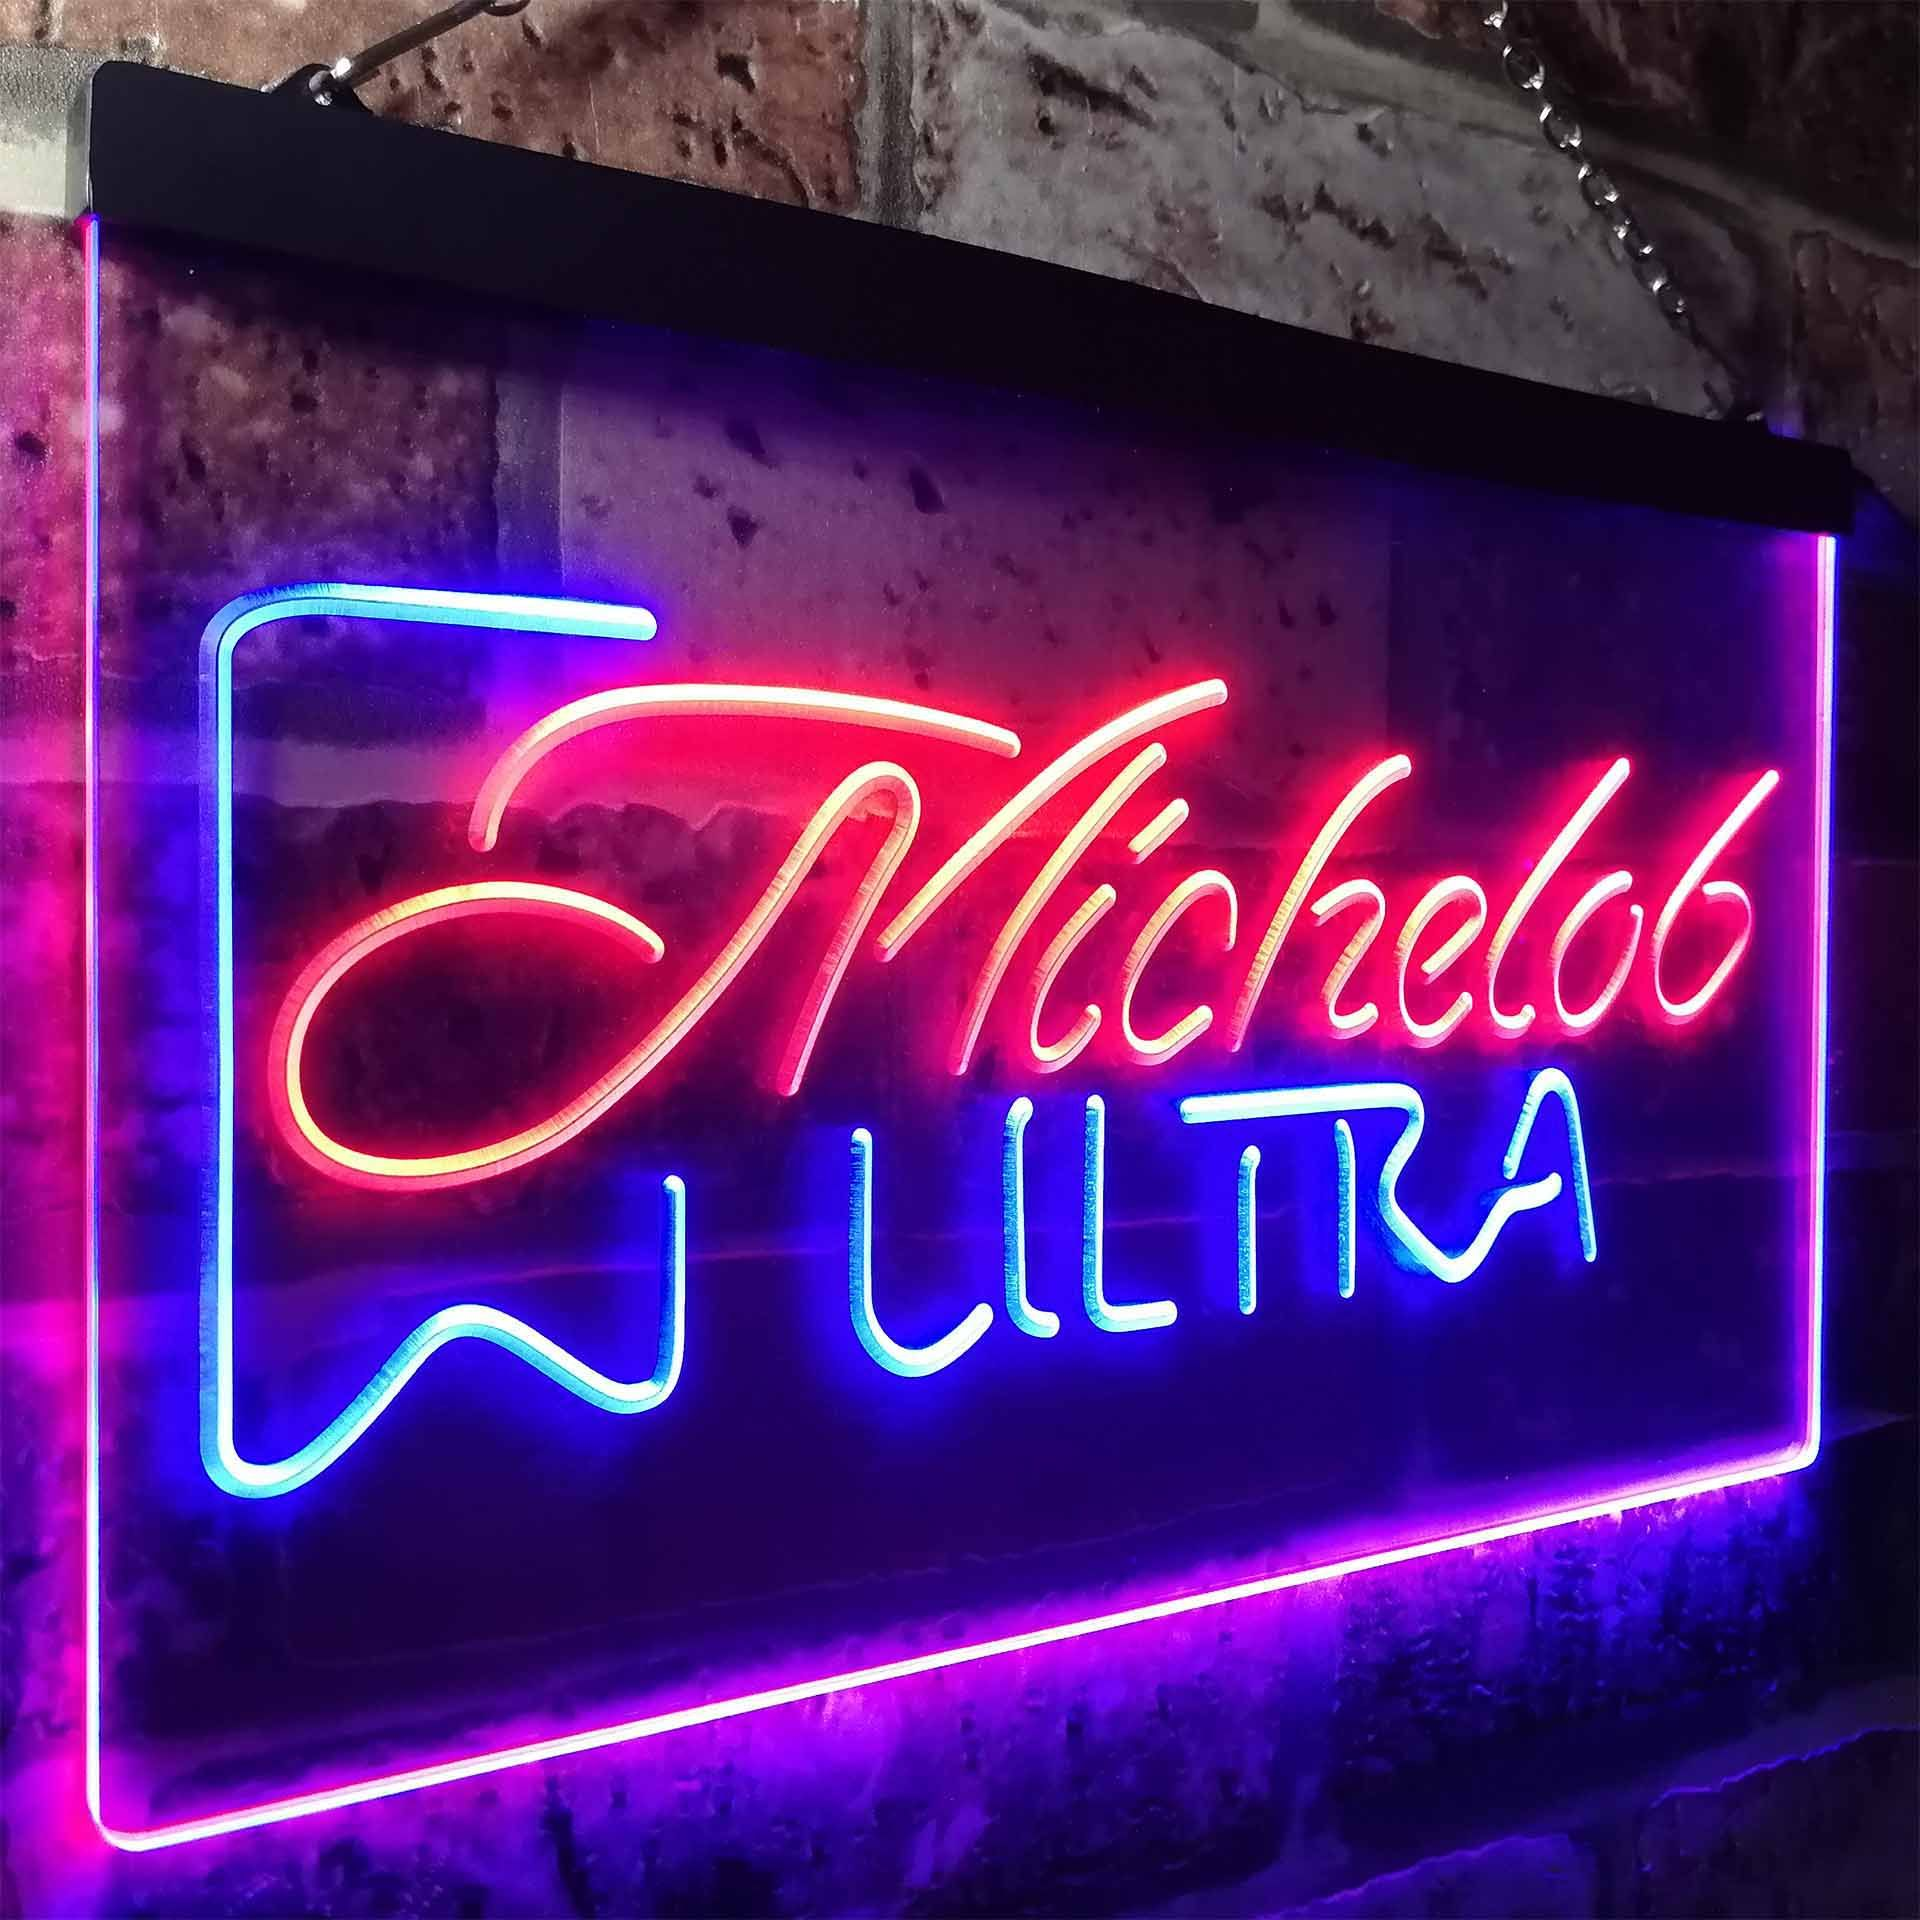 Michelob Ultra Superior Light Beer Novelty LED Neon Sign